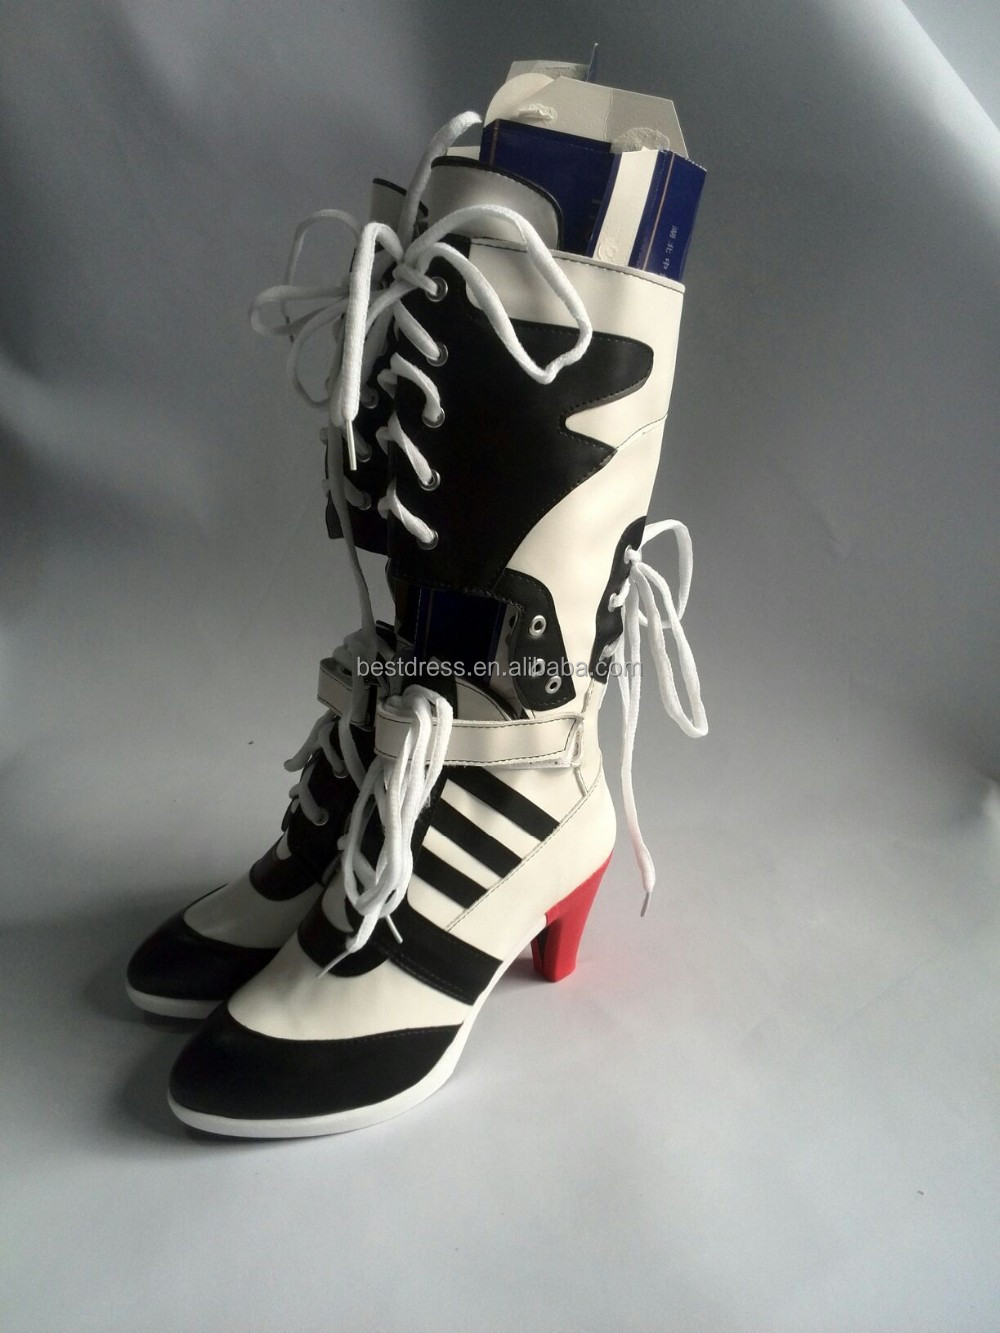 Cheapest DC Comics Suicide Squad Harley Quinn Cosplay Boots High Quality Costume